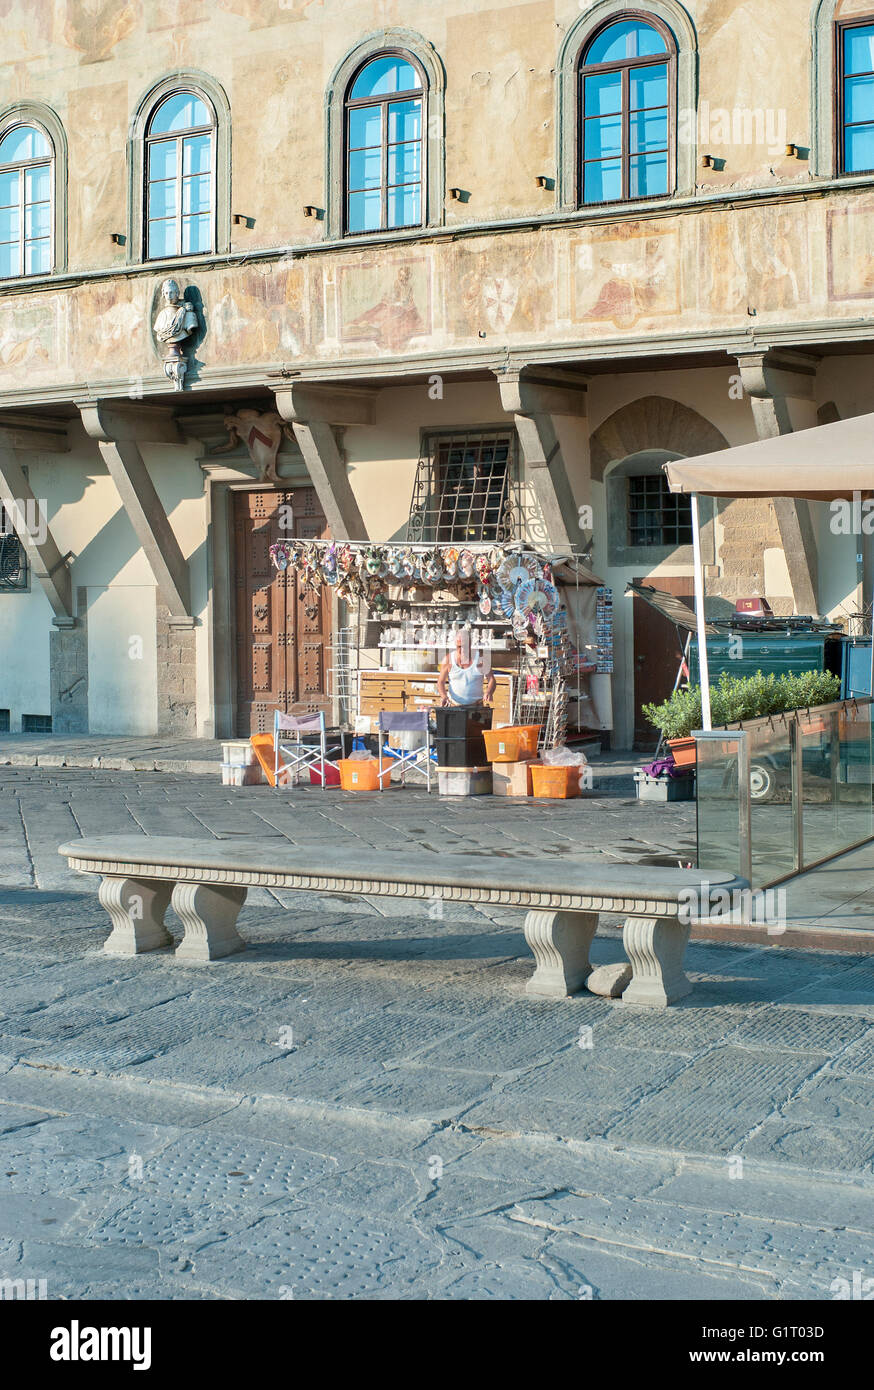 market stall santa croce square Florence Italy - Stock Image